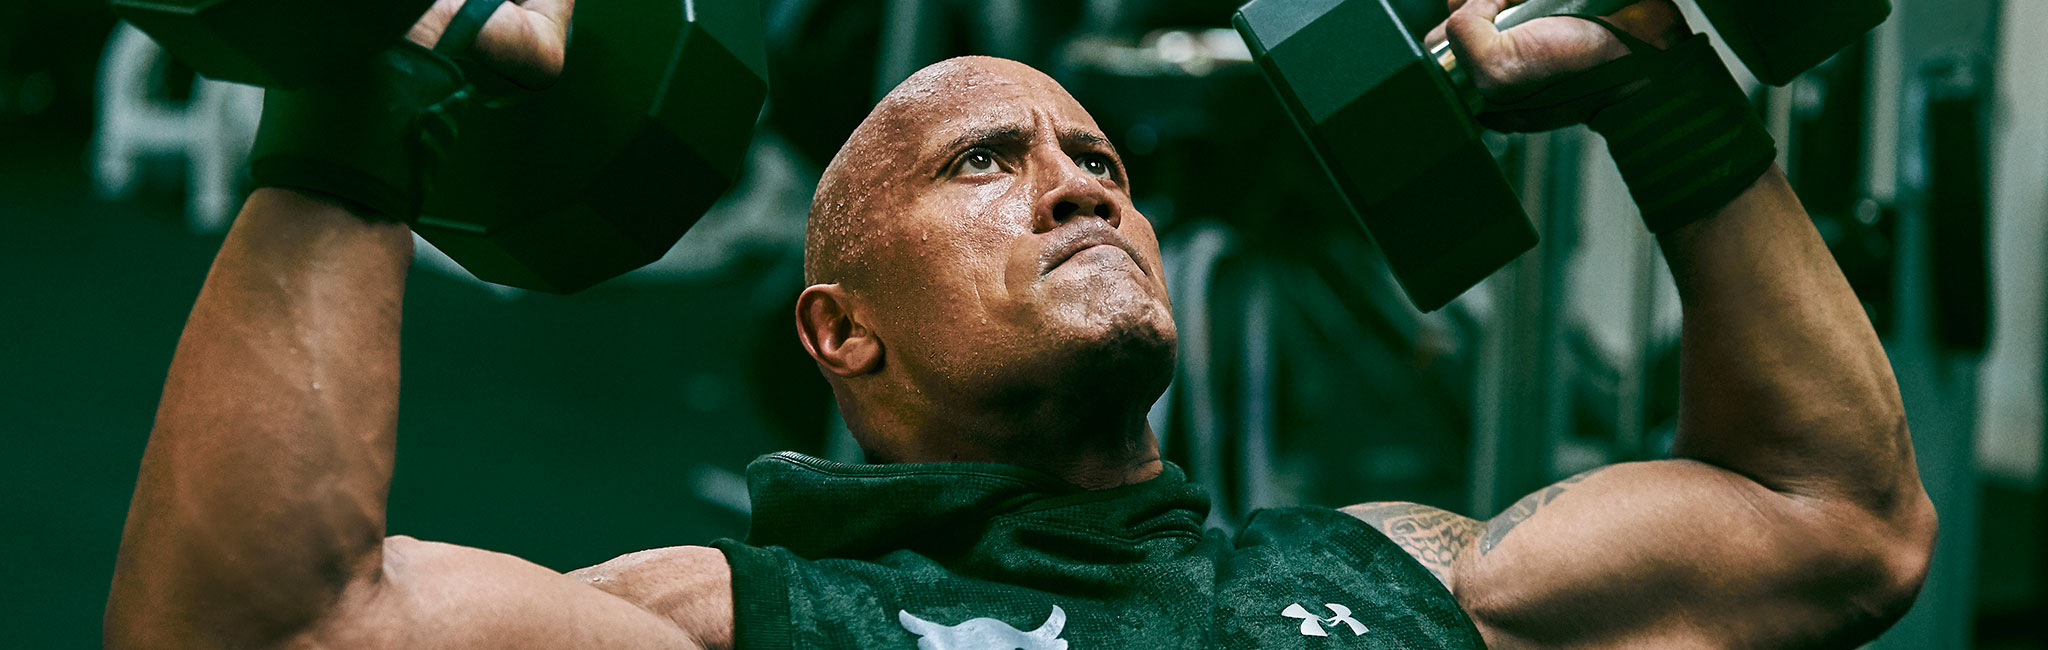 Dwayne The Rock Johnson for Under Armour